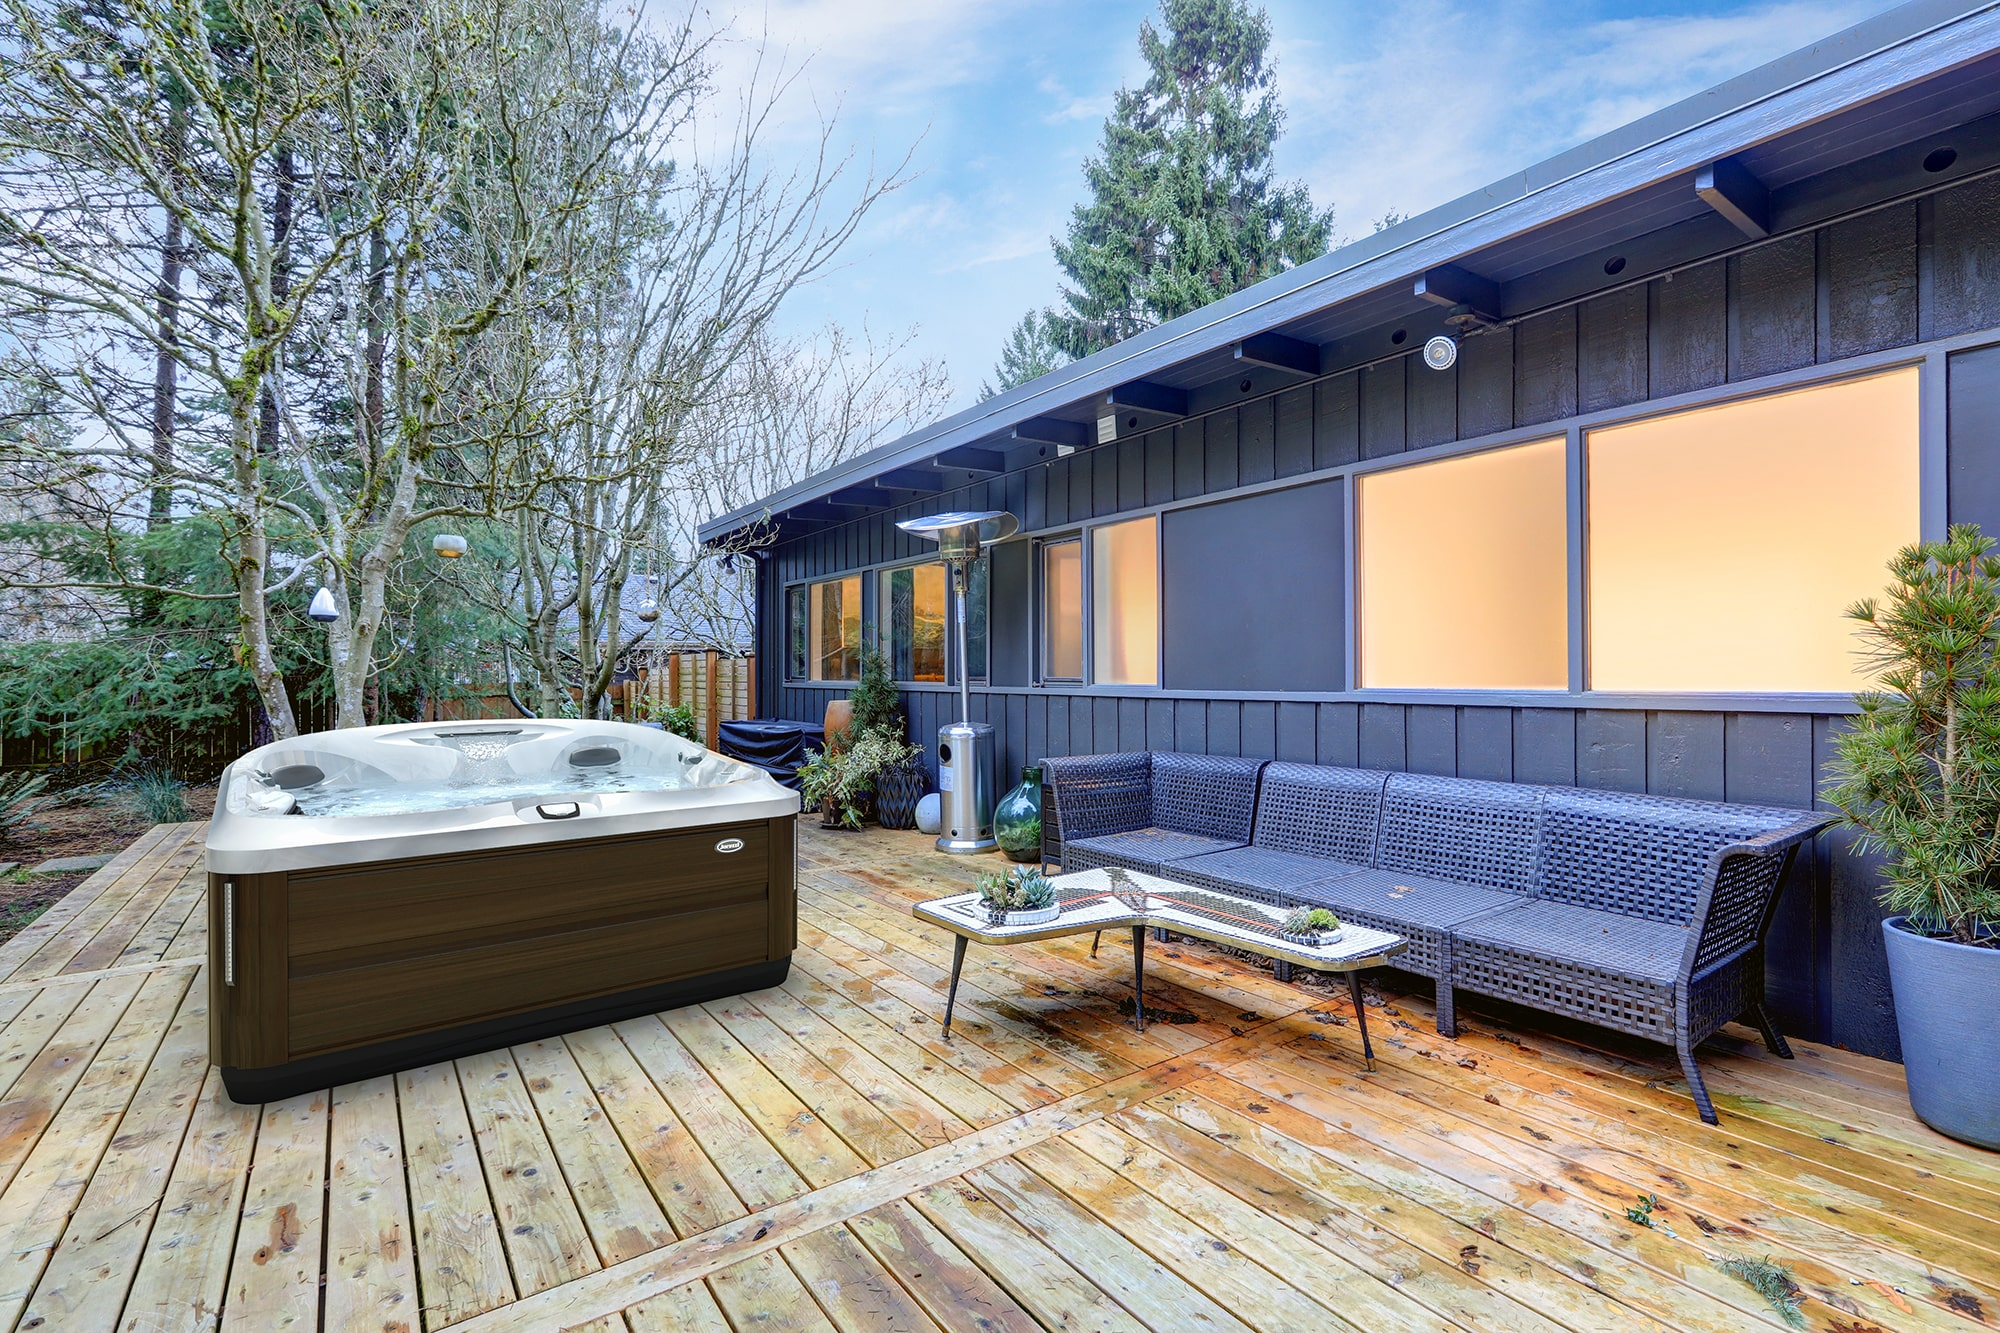 backyard inspiration ideas for your